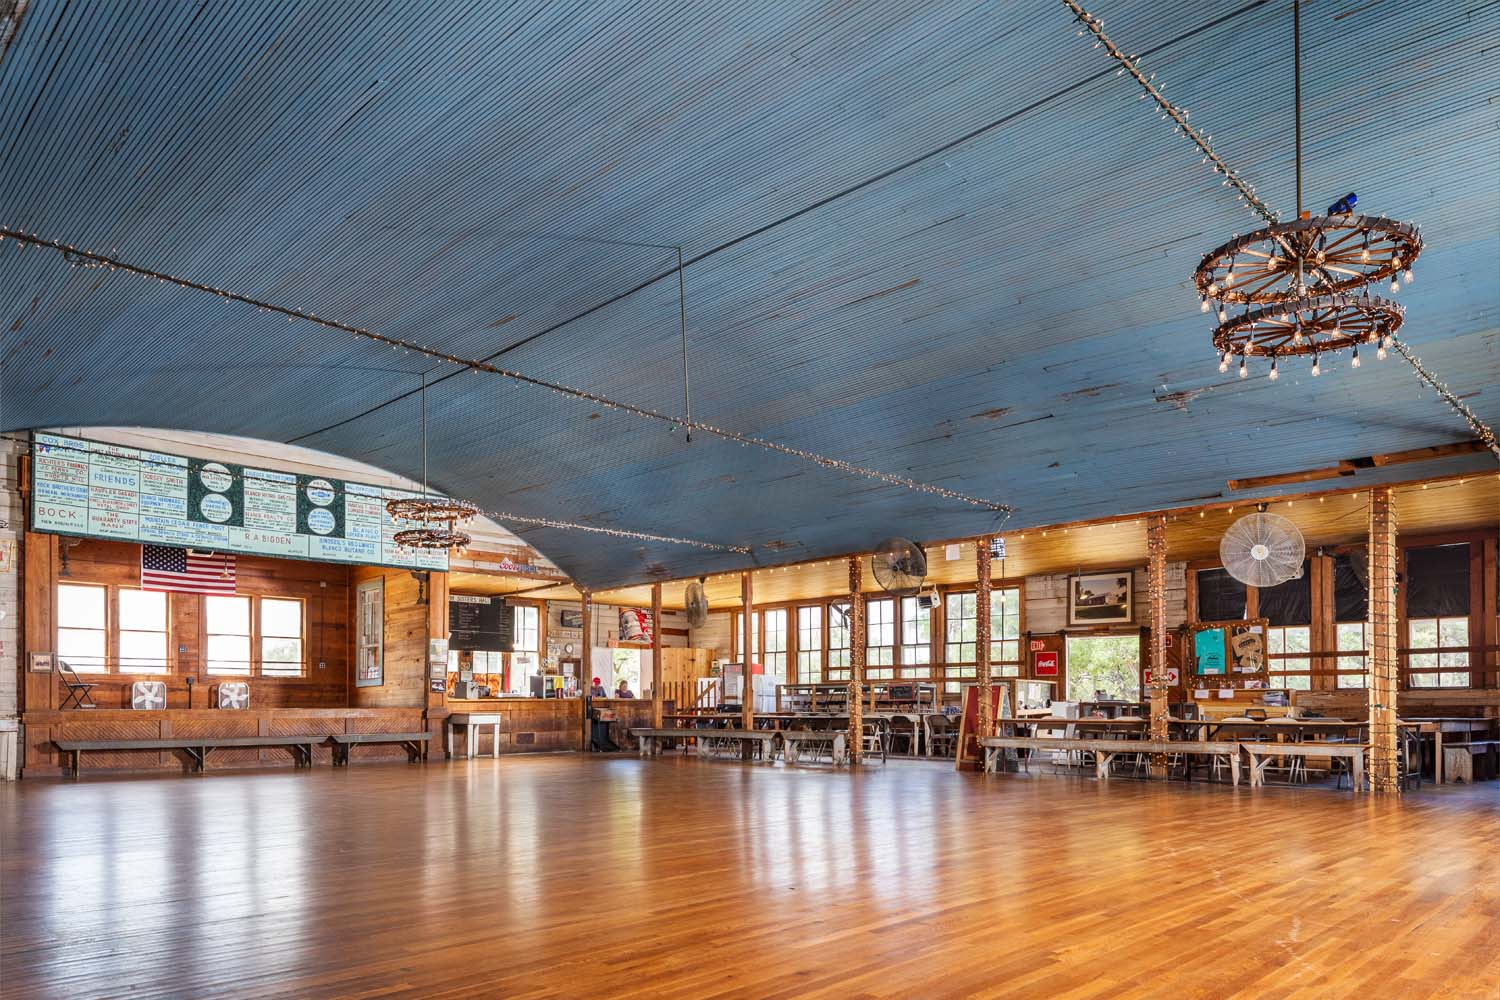 TEXAS DANCEHALLS, TWIN SISTERS